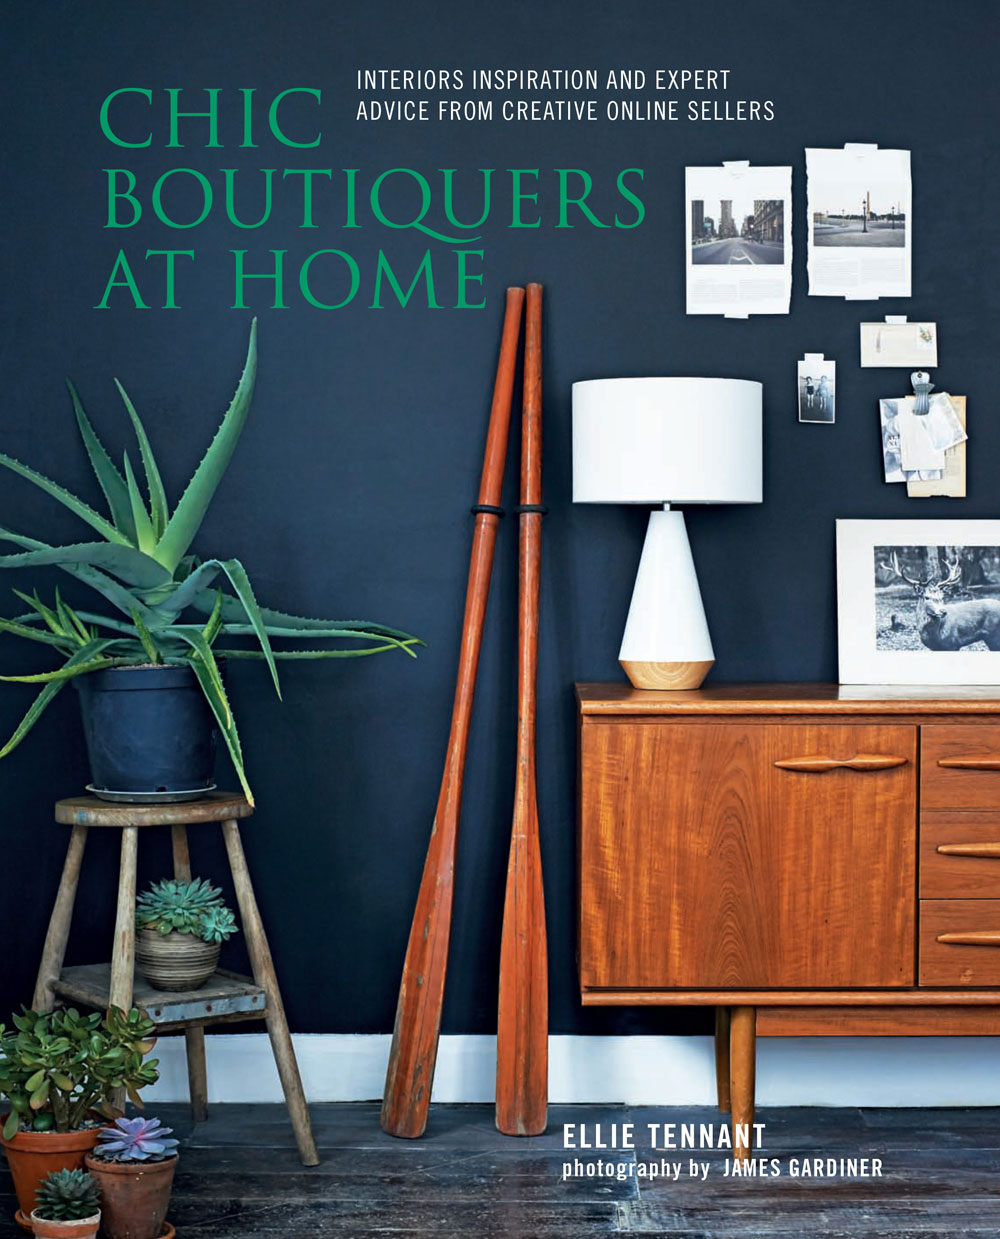 Chic Boutiquers At Home by Ellie Tennant